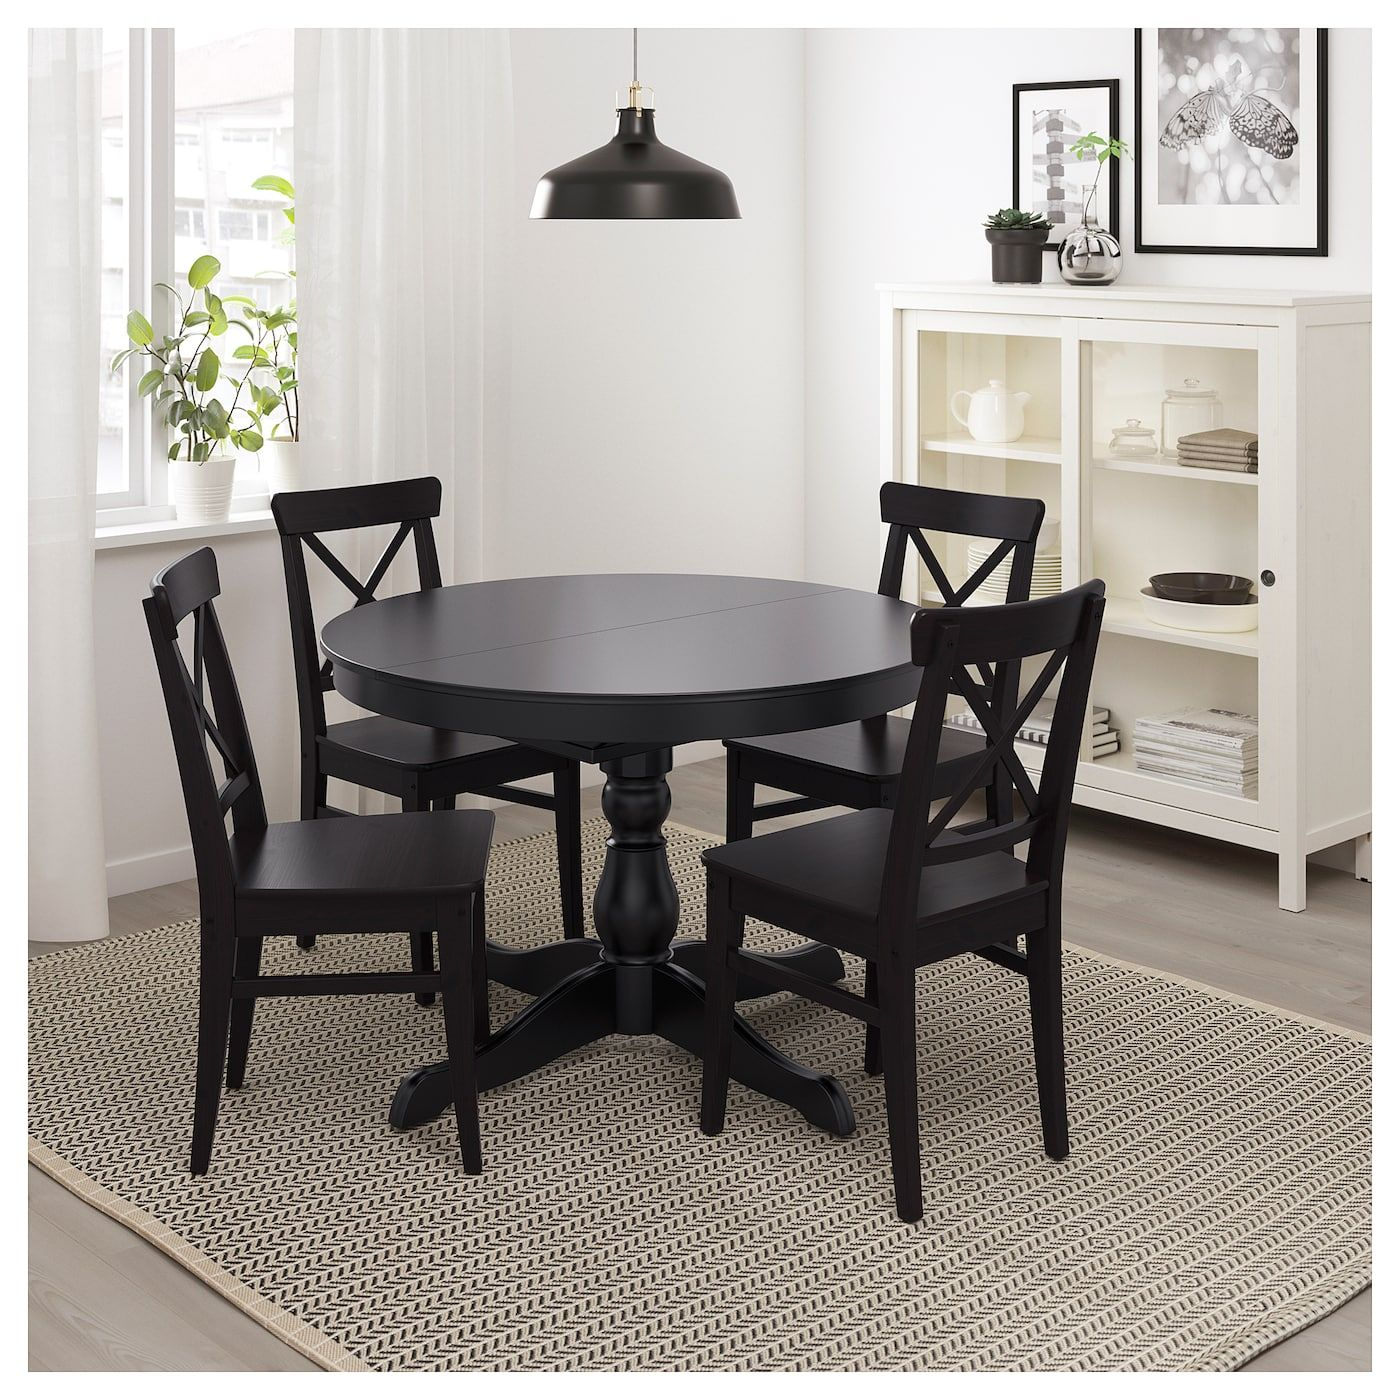 Ingatorp Extendable Table Black Ca Ikea Dining Table Black